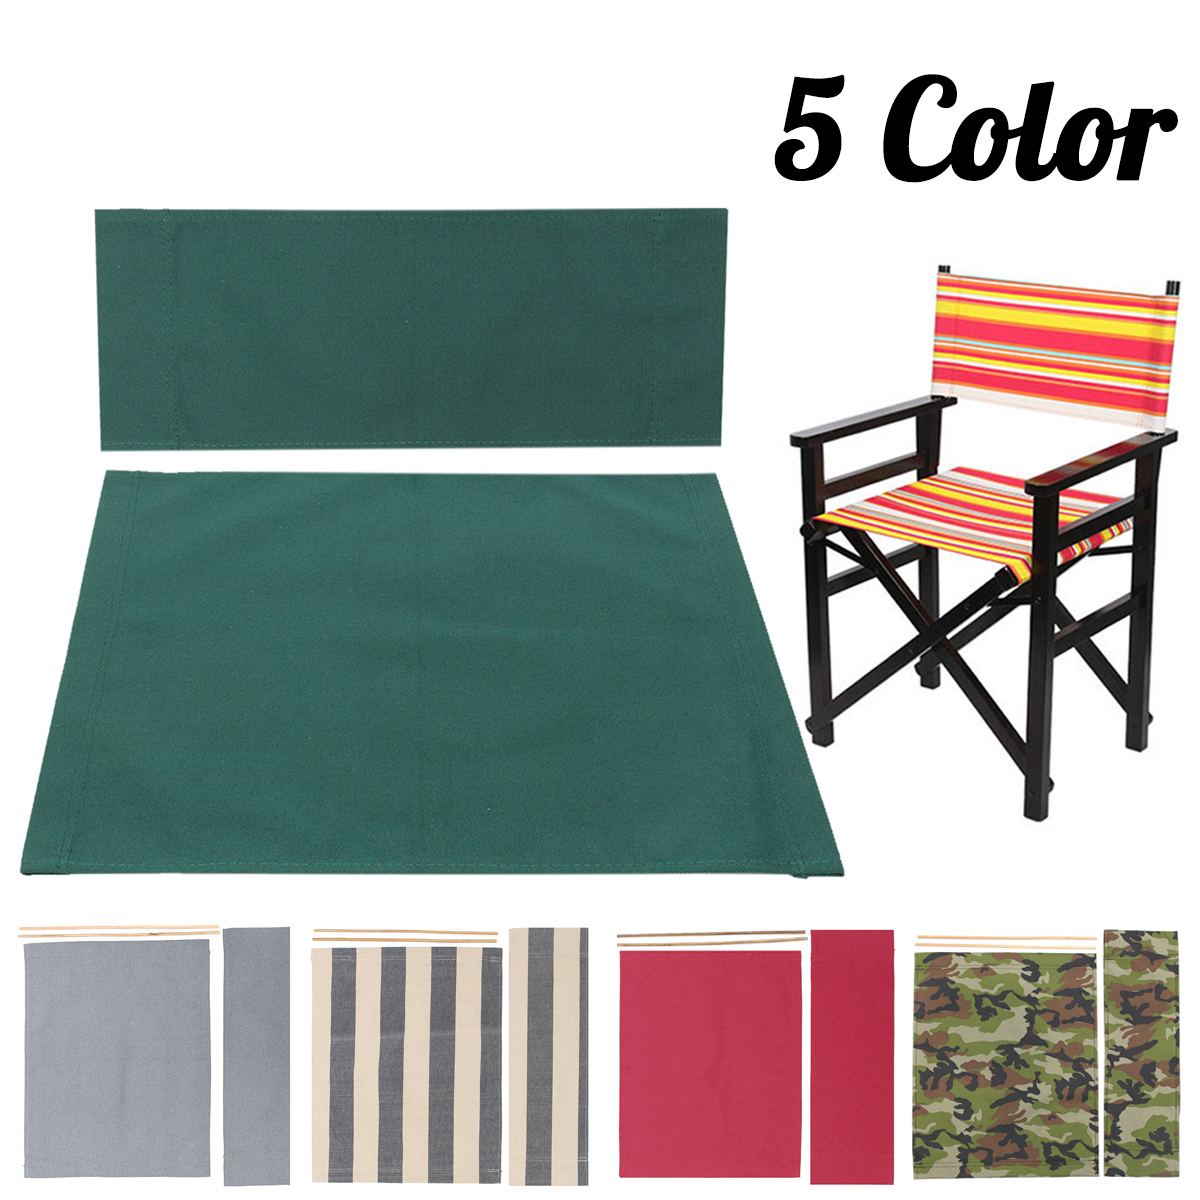 Brilliant Details About Casual Directors Chairs Cover Replacement Canvas Seat Stool Covers Kit Outdoor Bralicious Painted Fabric Chair Ideas Braliciousco